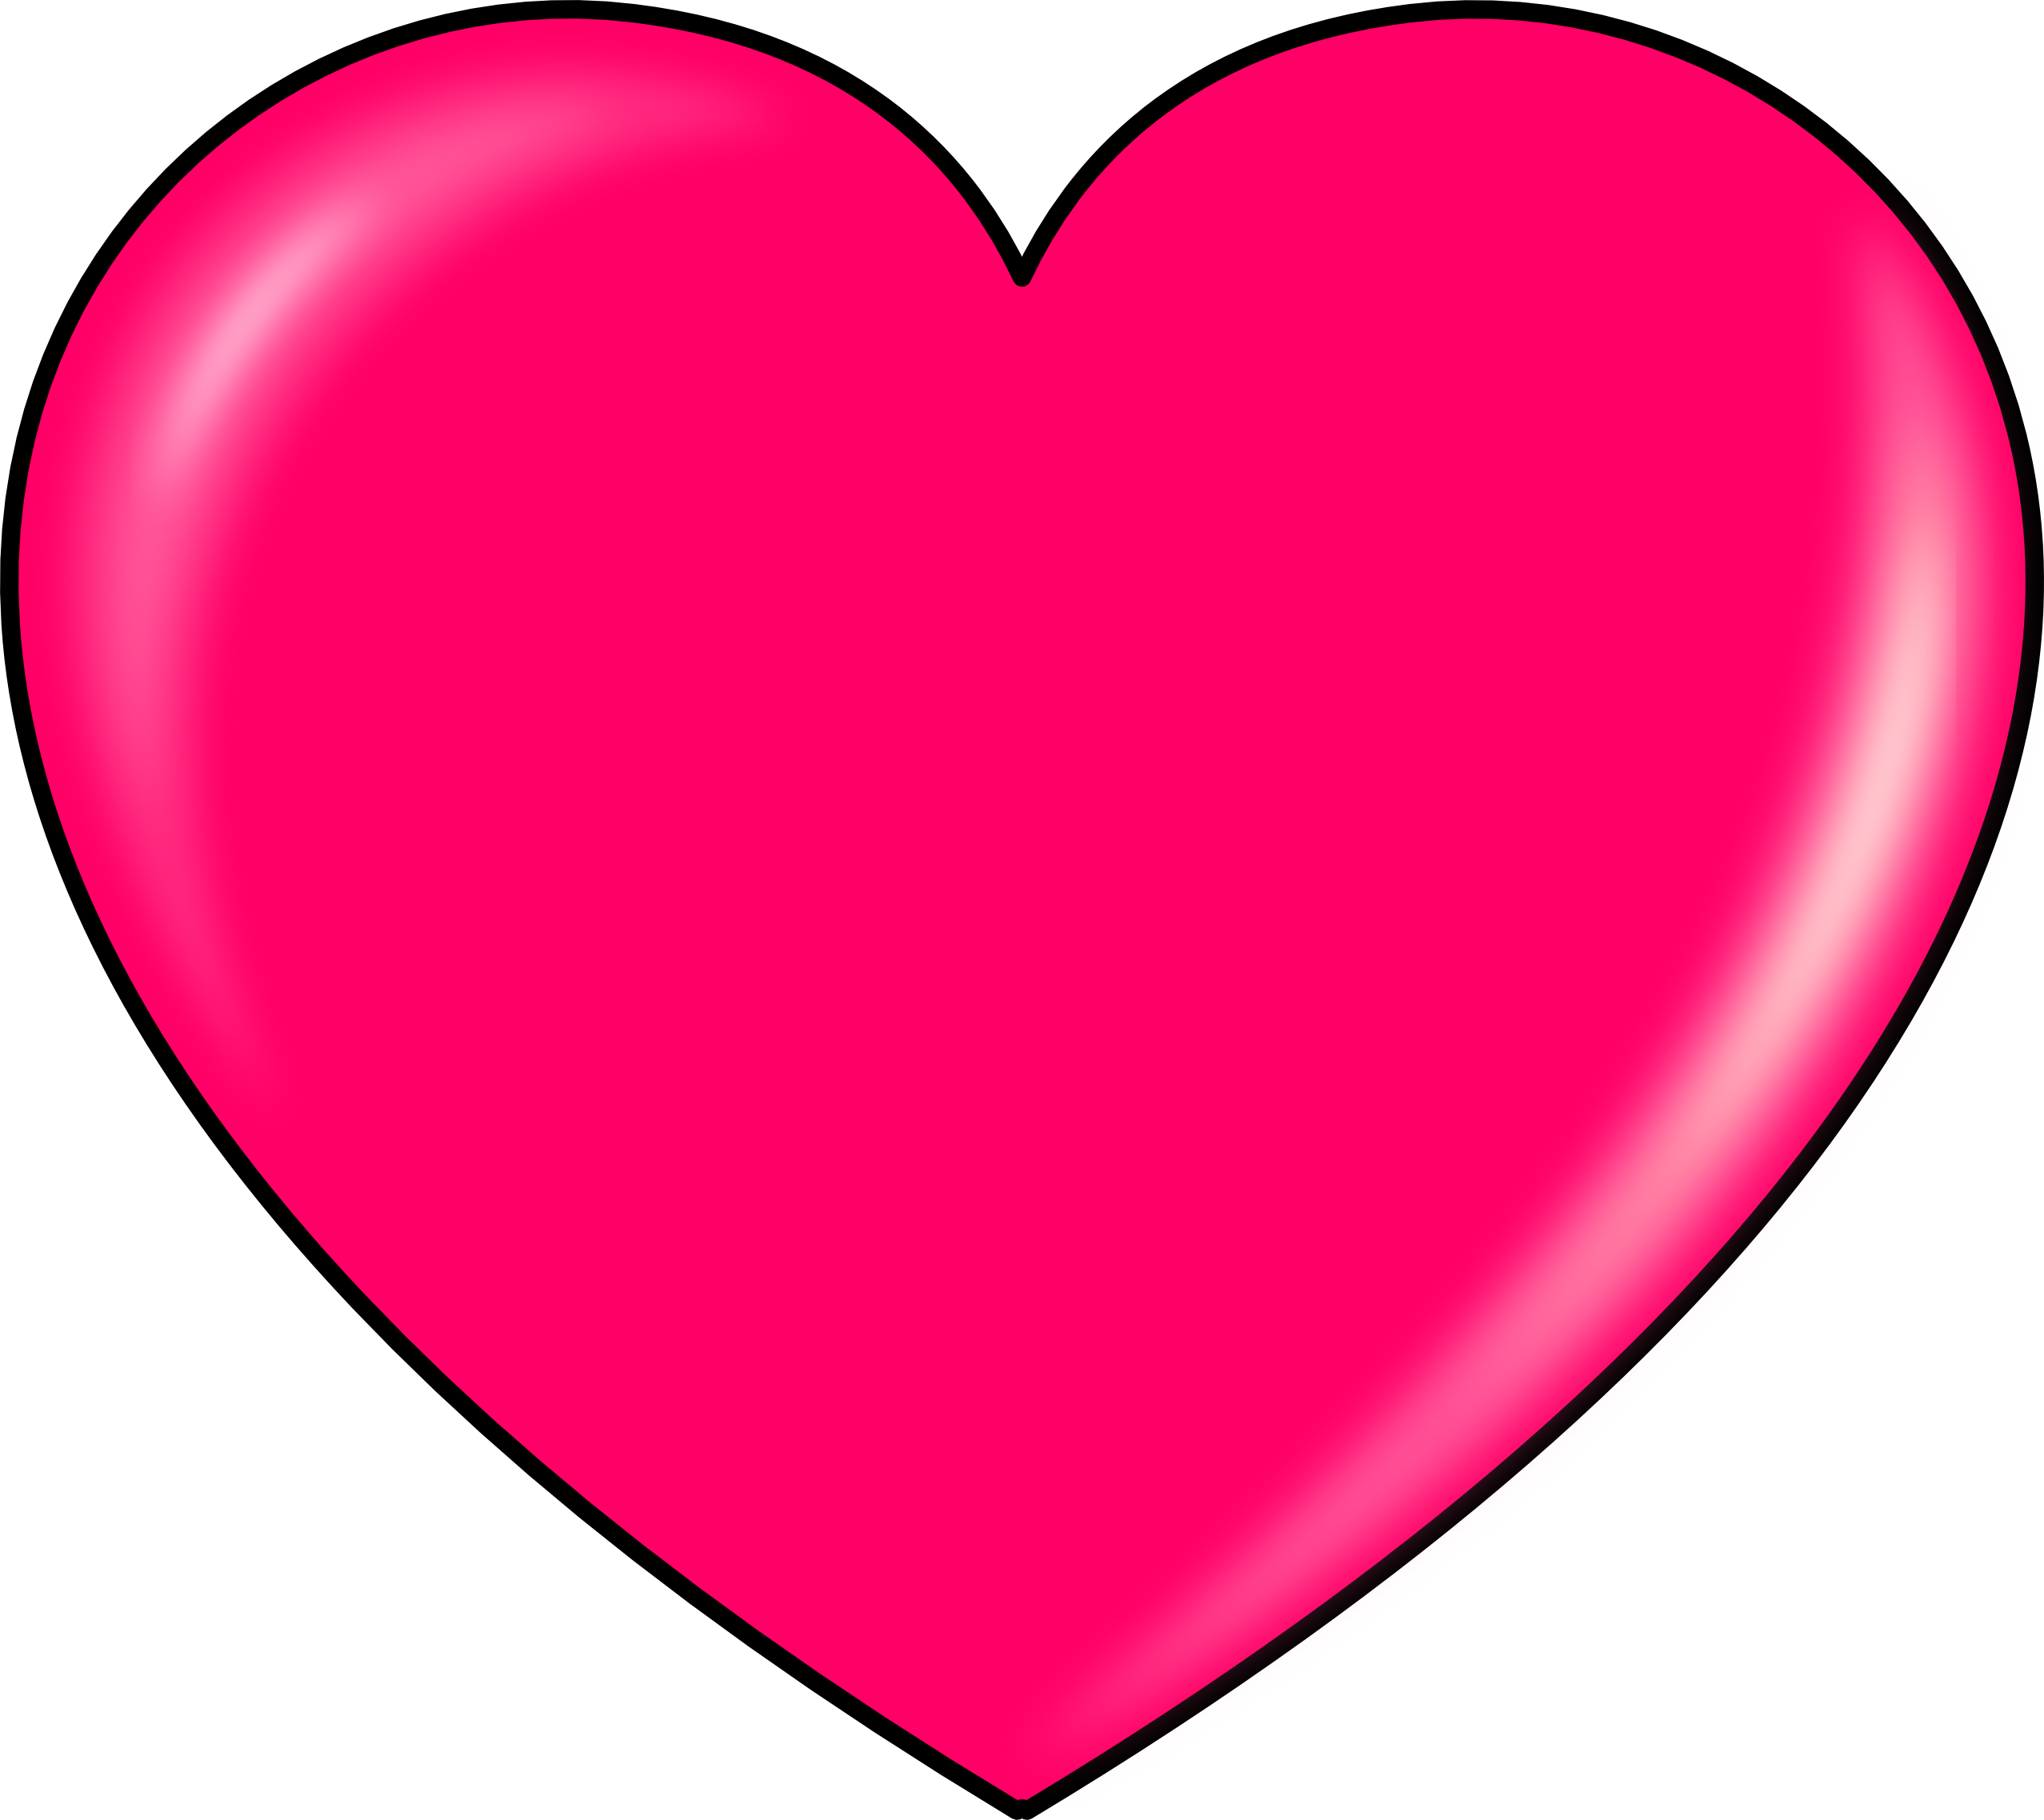 Pink Love Heart PNG HD - 122337